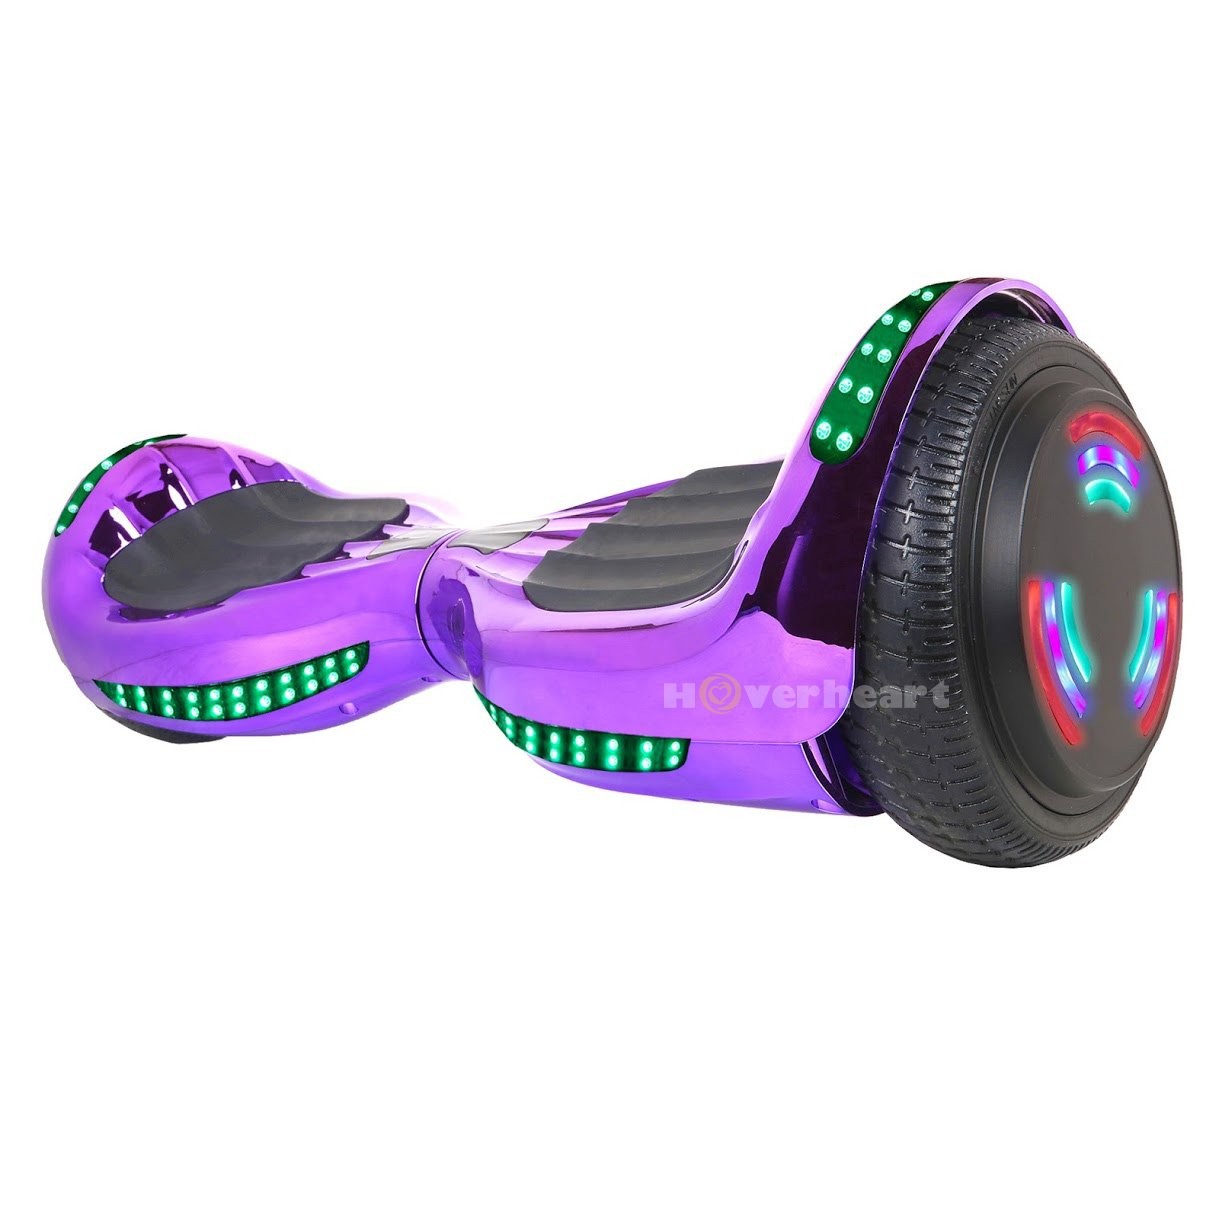 Hoverboard UL 2272 Certified Flash Wheel 6.5'' Bluetooth Speaker with LED Light Self Balancing Wheel Electric Scooter (Chrome Violet)